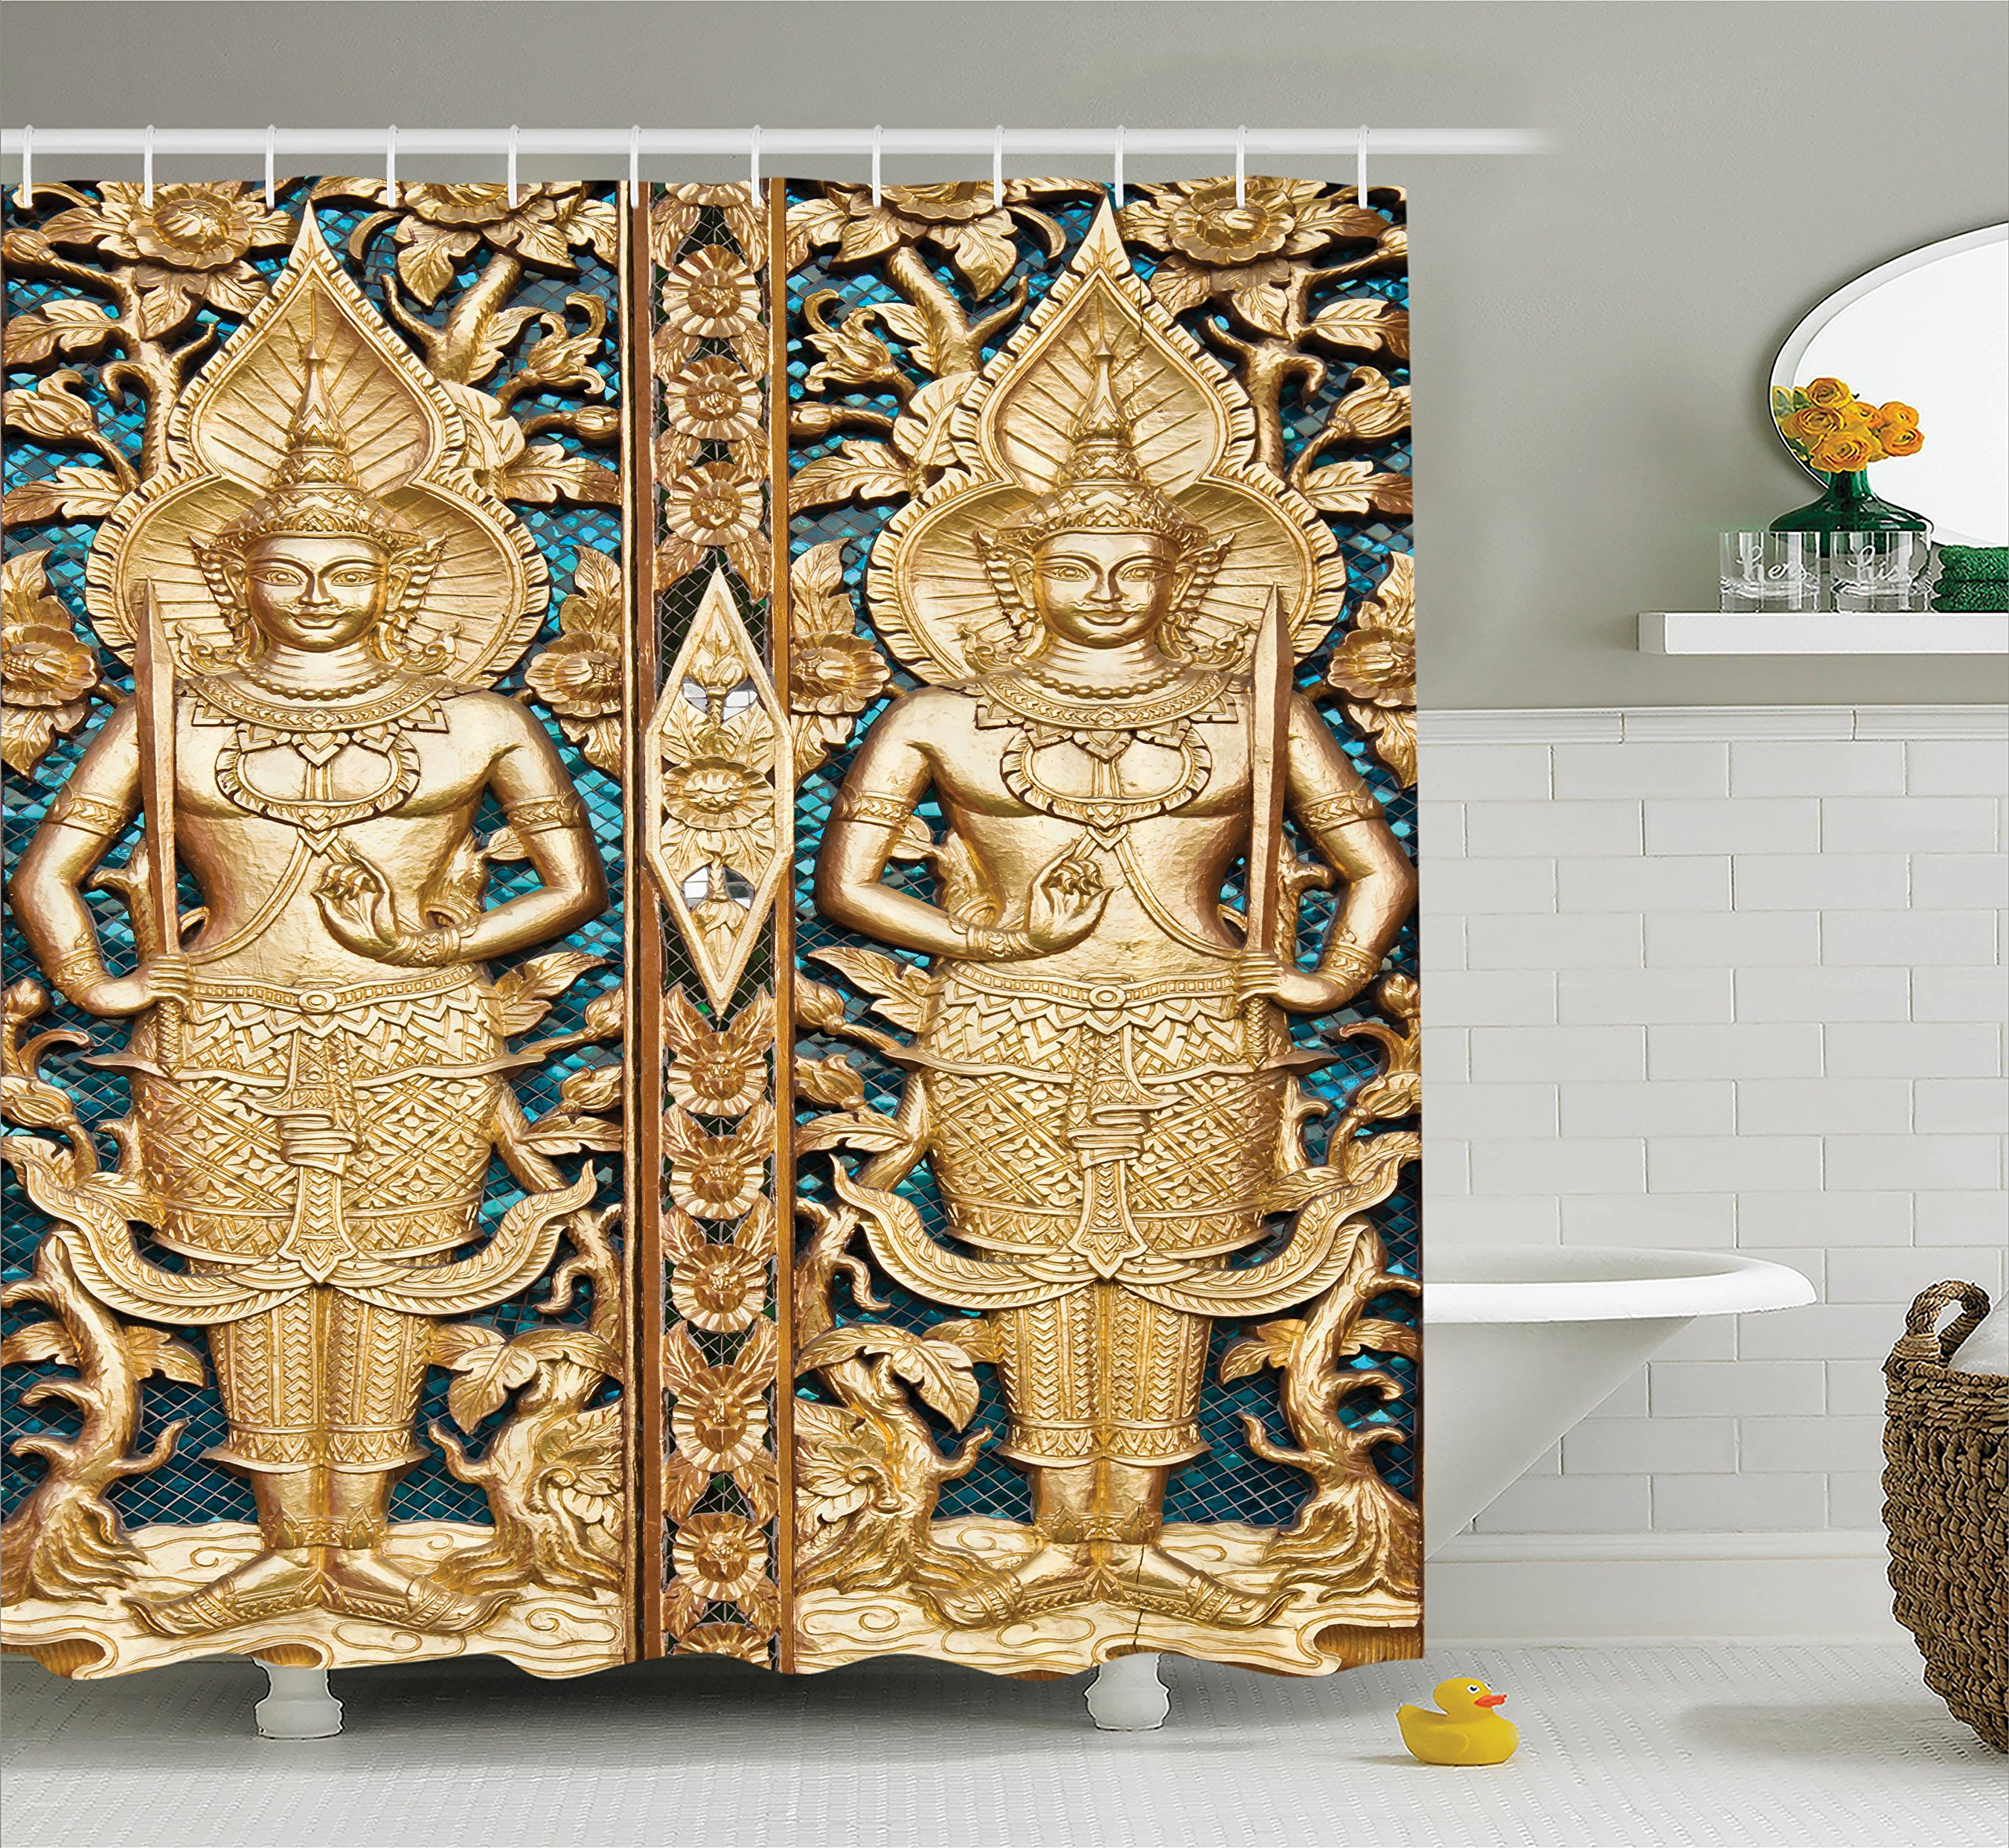 Ambesonne Rustic Decor Collection, Thai Gate at Wat Sirisa Tong Thailand Buddhism Architecture History Spiritual Picture, Polyester Fabric Bathroom Shower Curtain Set with Hooks, Golden Teal